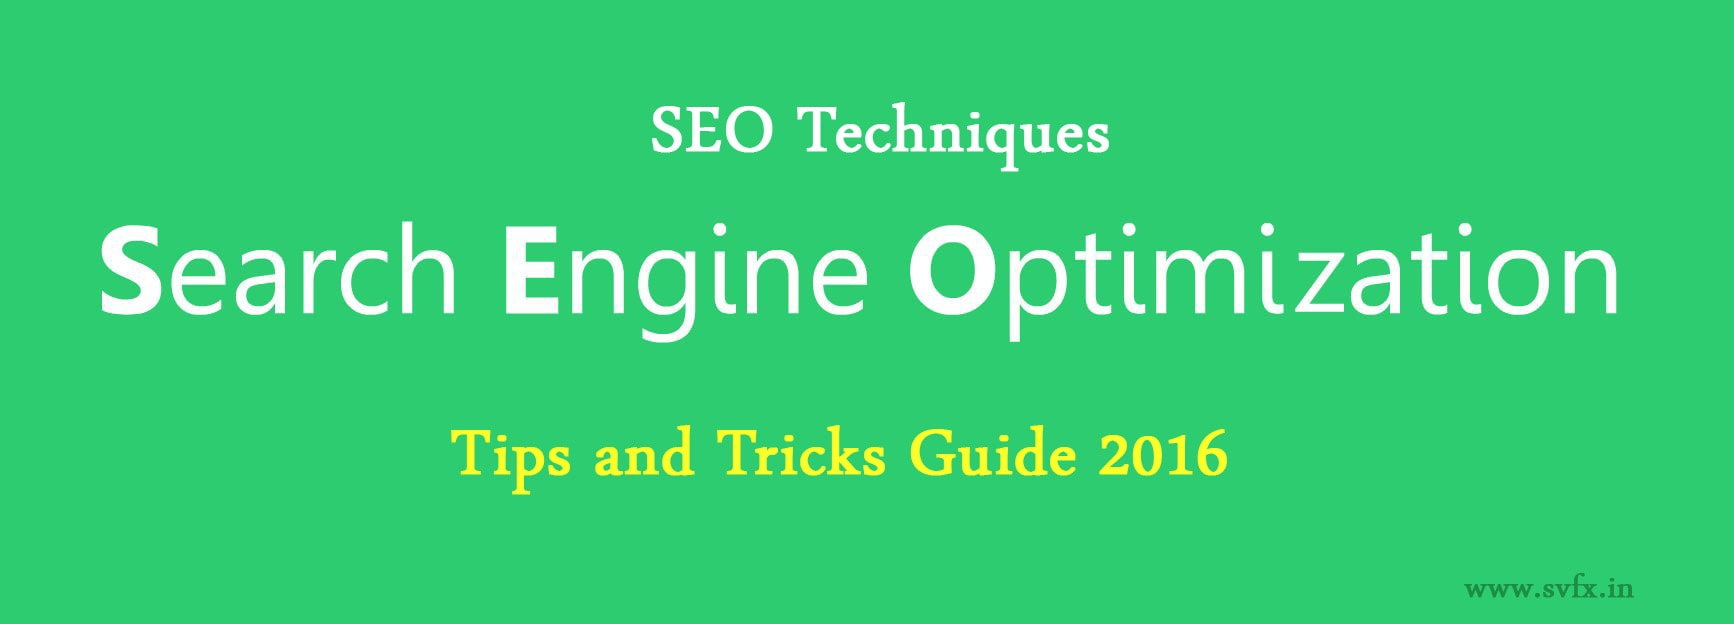 Search Engine Optimization Techniques 2016